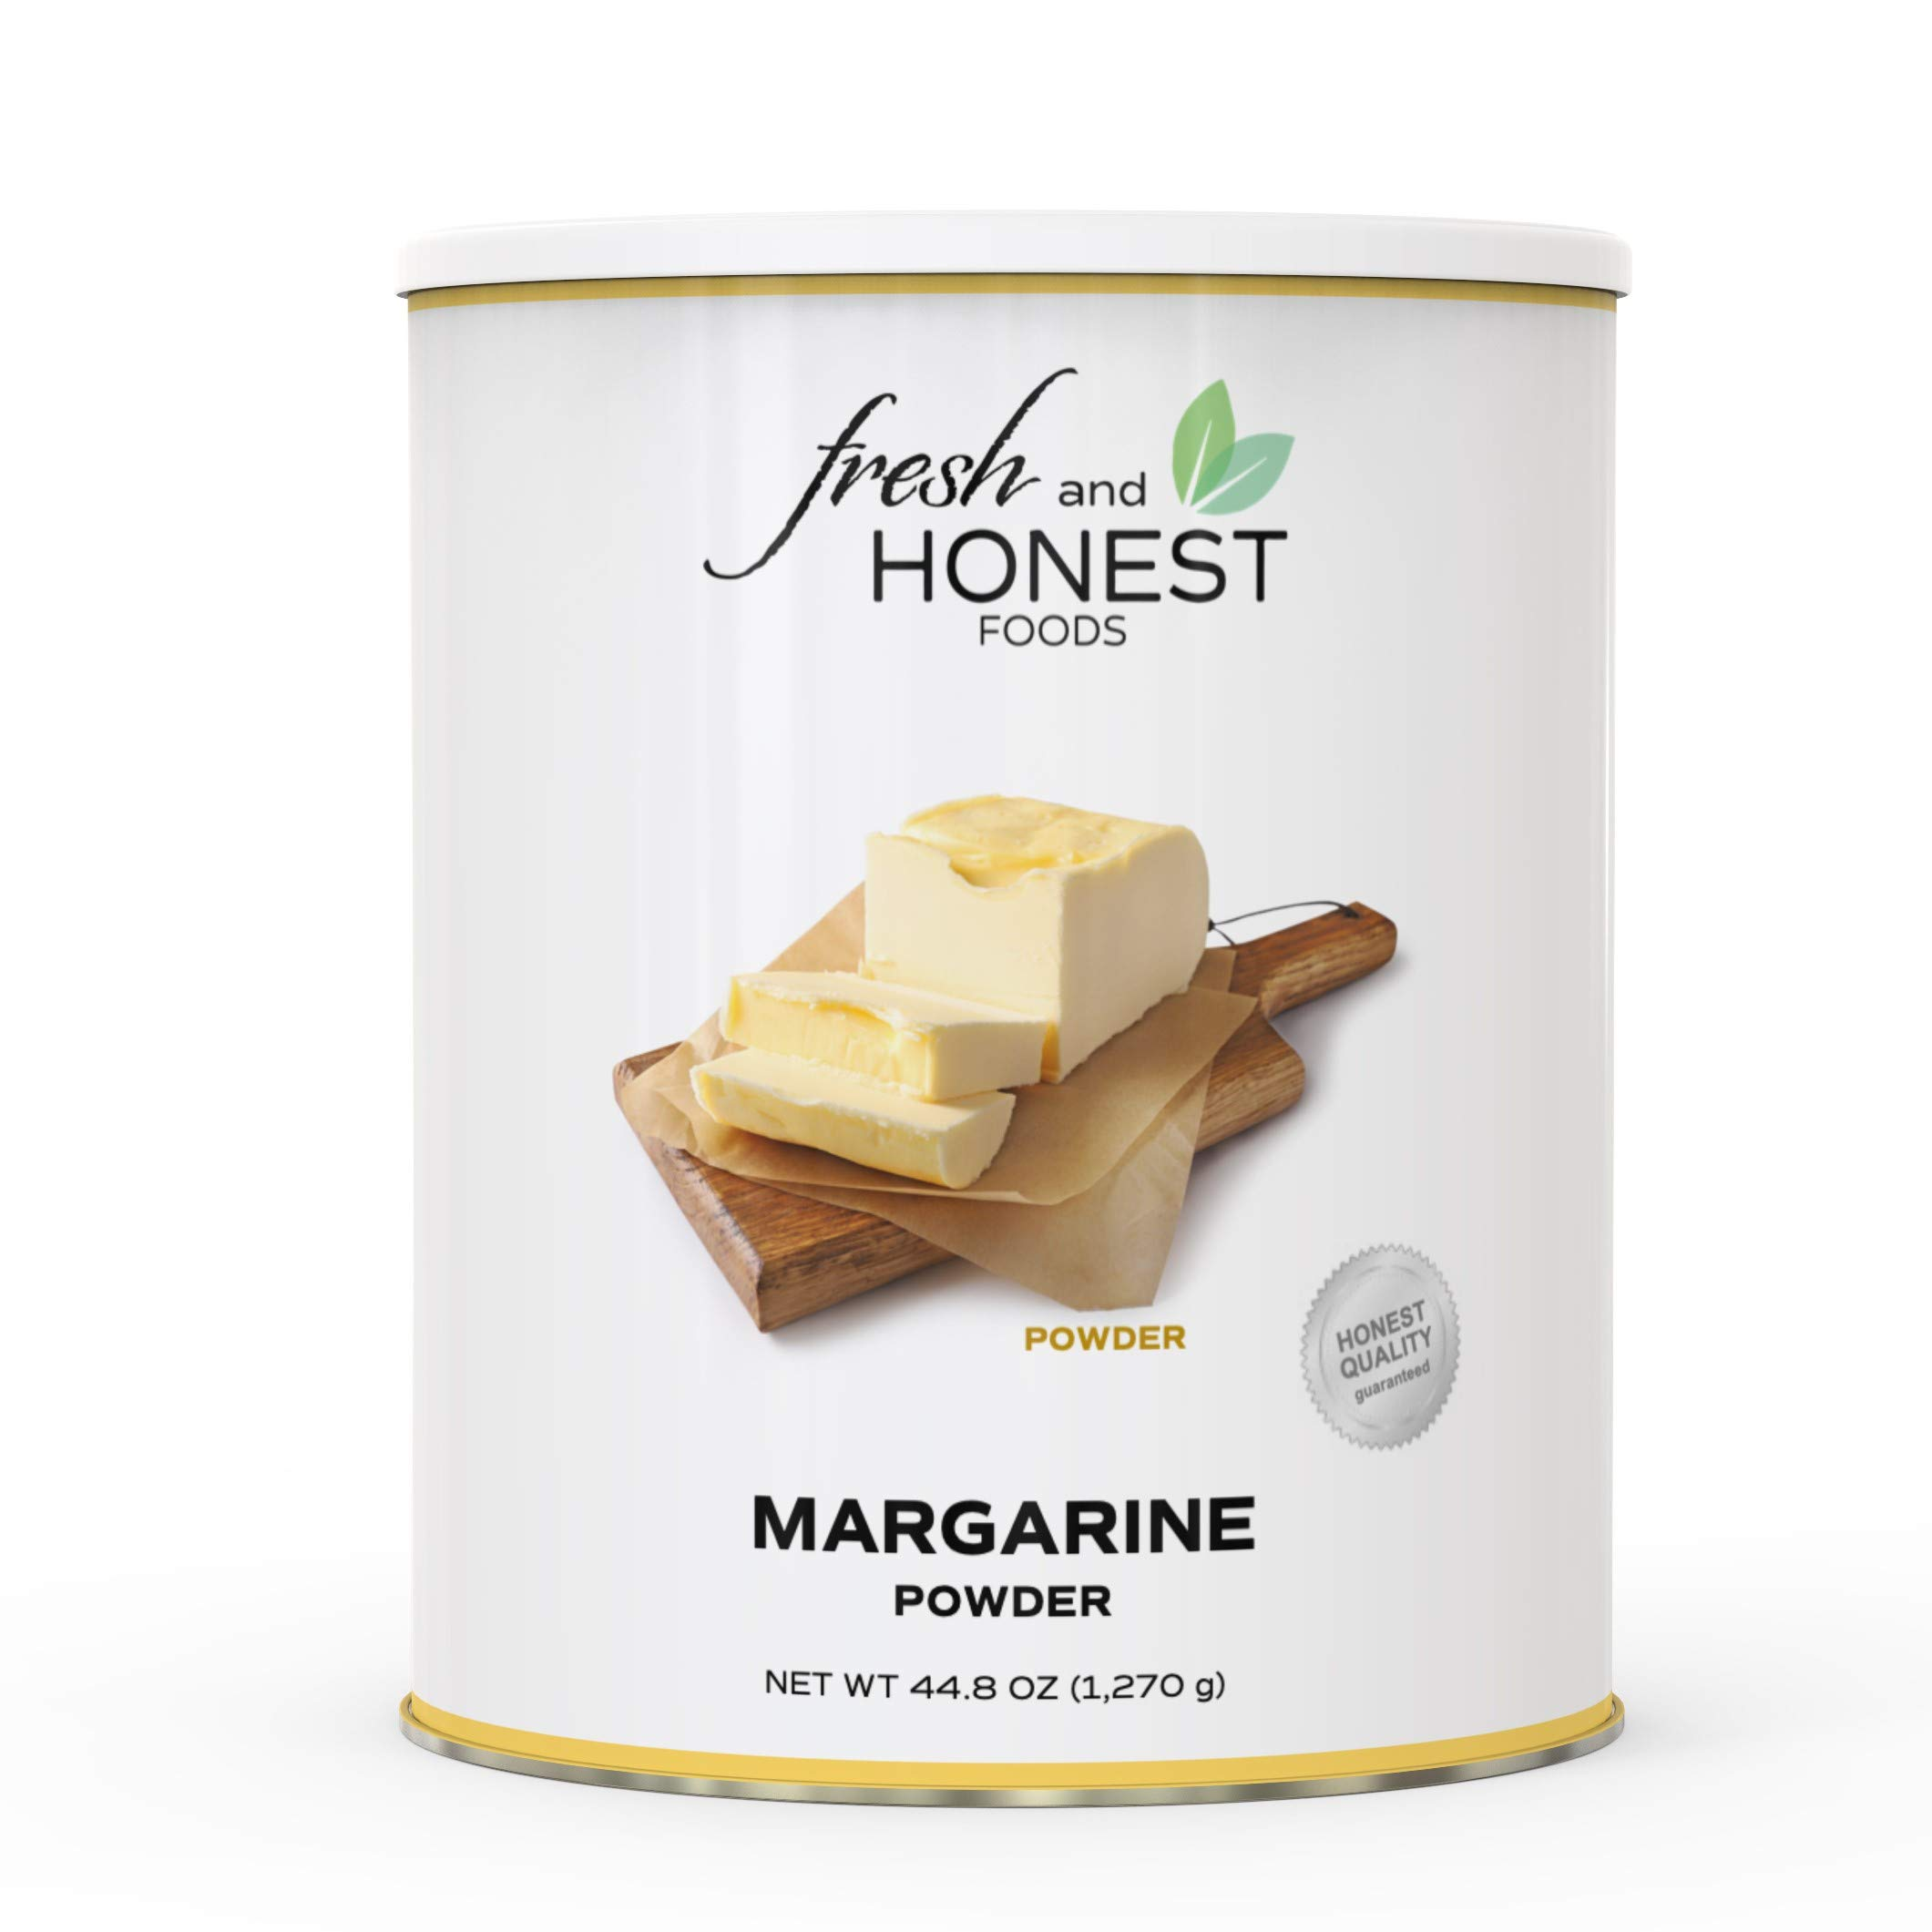 Fresh and Honest Foods Margarine Powder 44.8 OZ #10 Can